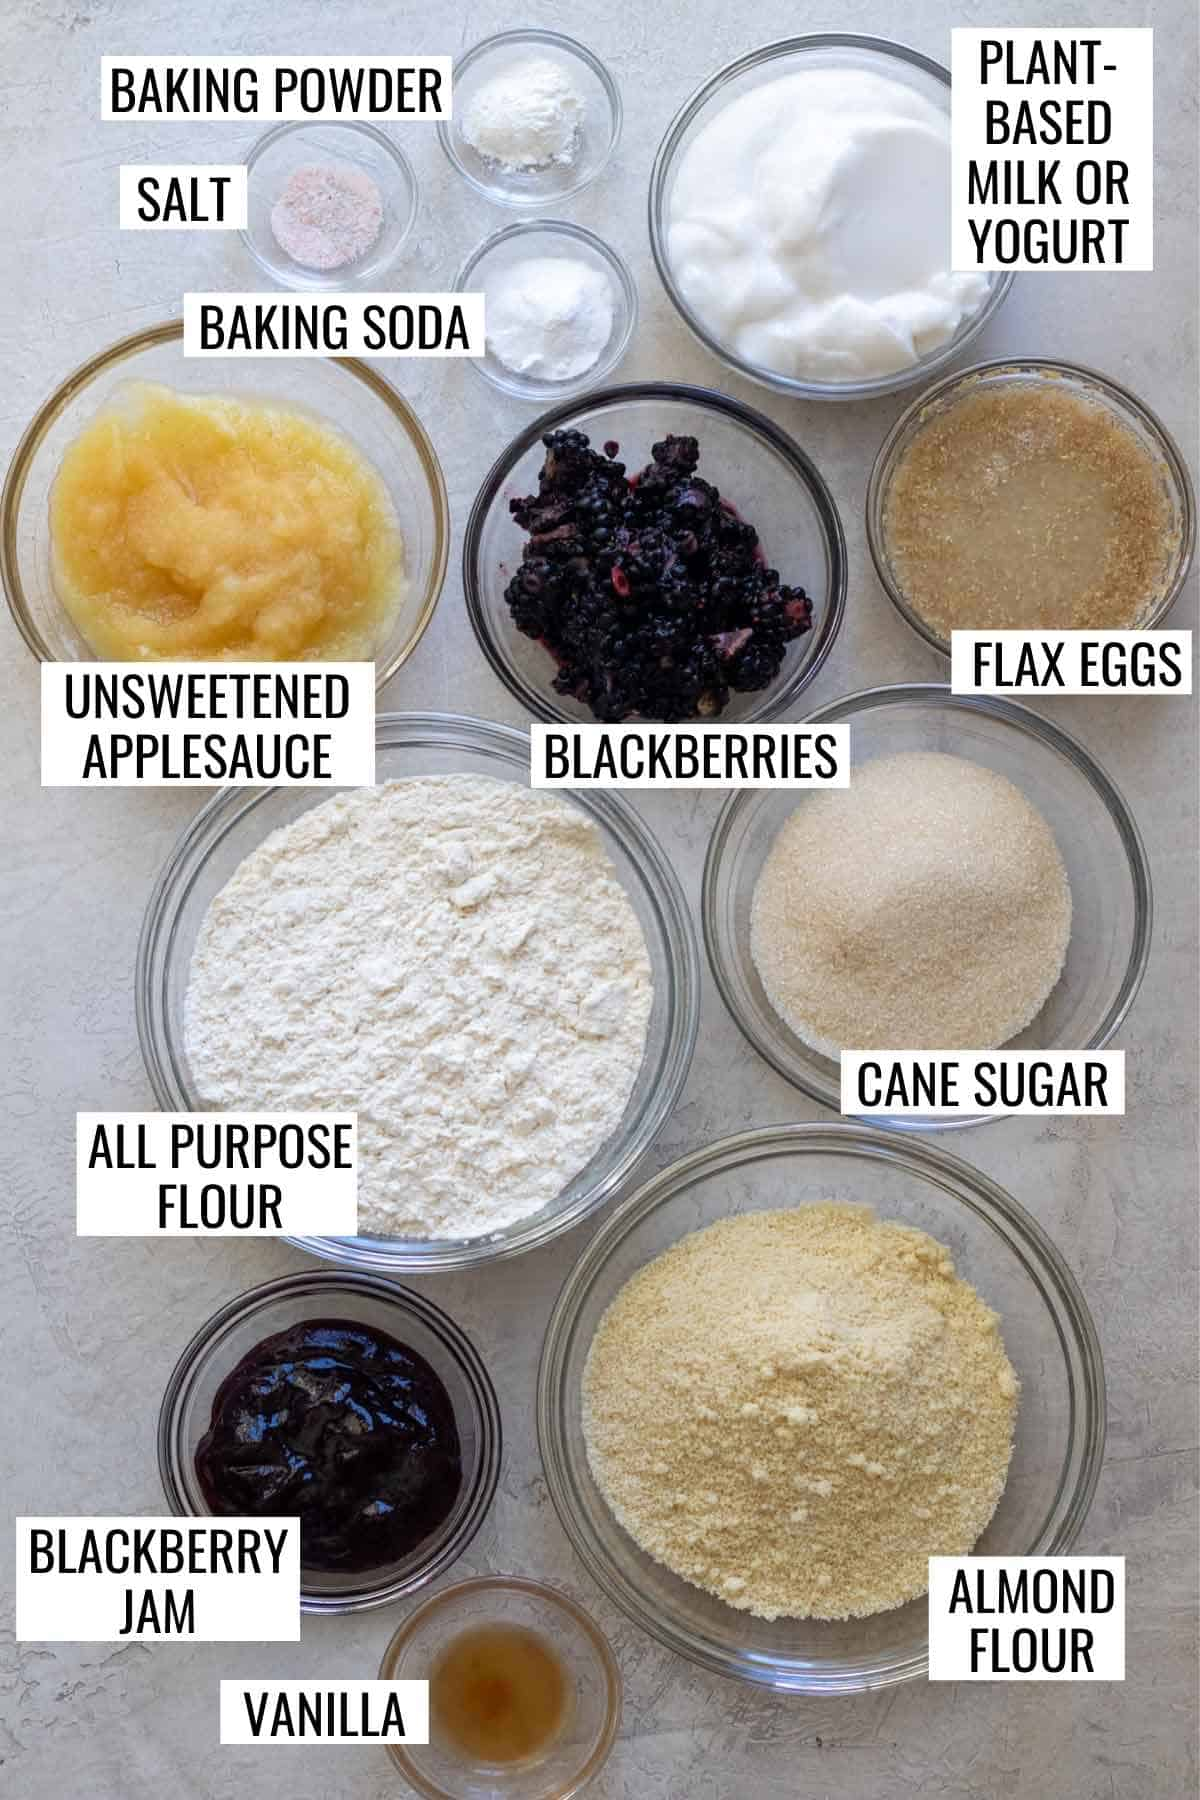 Ingredients needed for blackberry muffins measured into individual glass bowls and labeled.